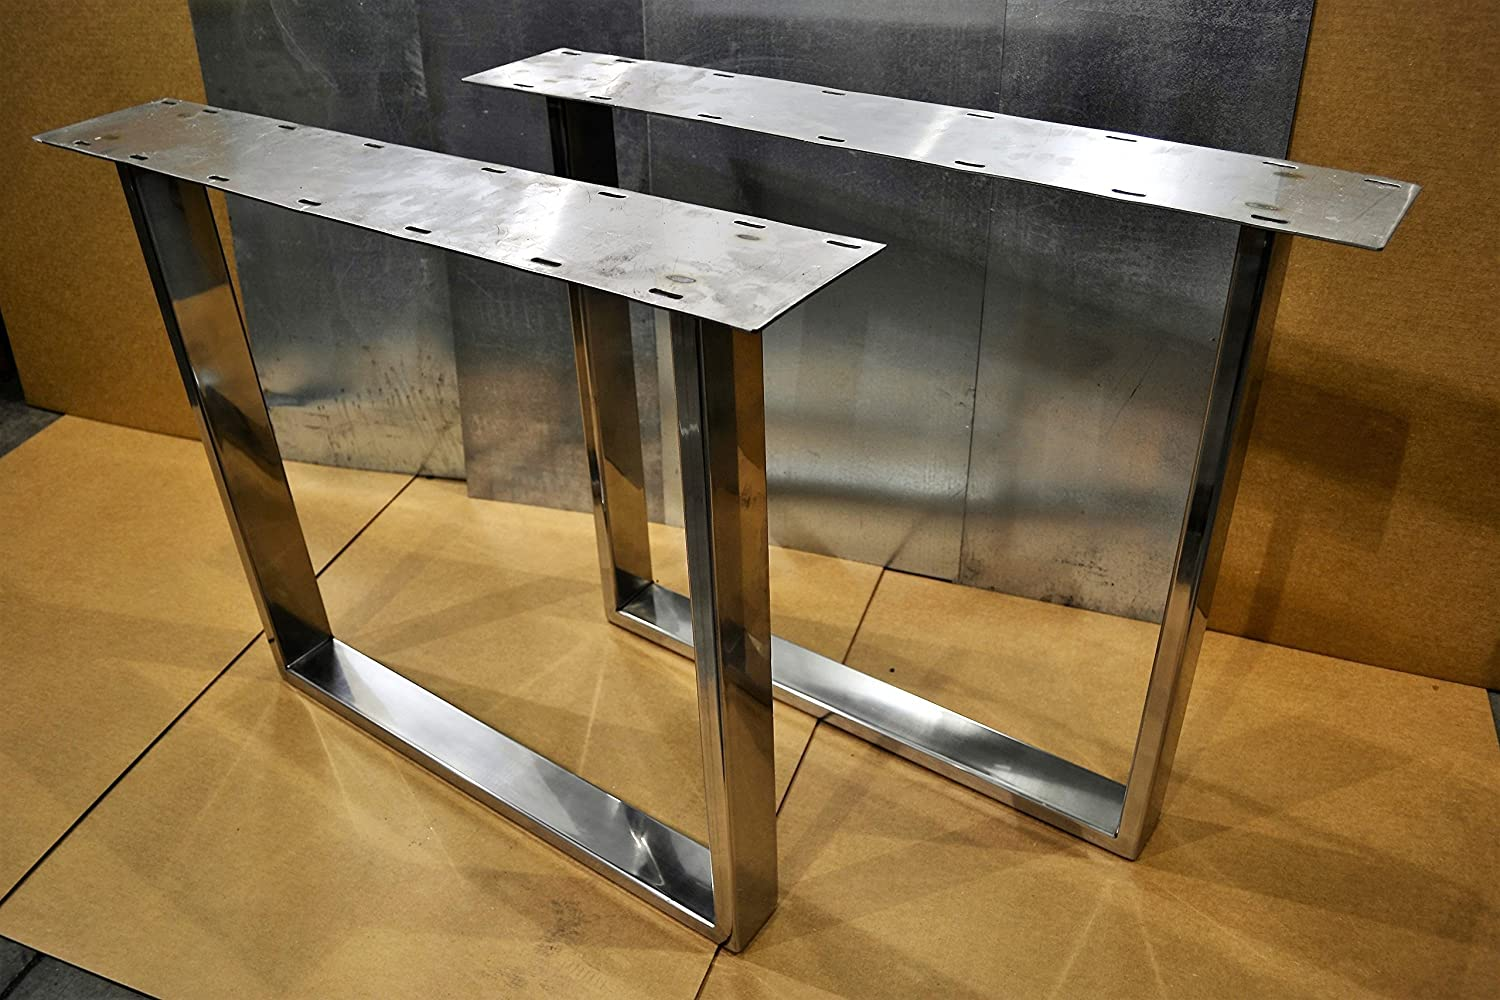 amazon com polished stainless chrome table legs rectangular rh amazon com